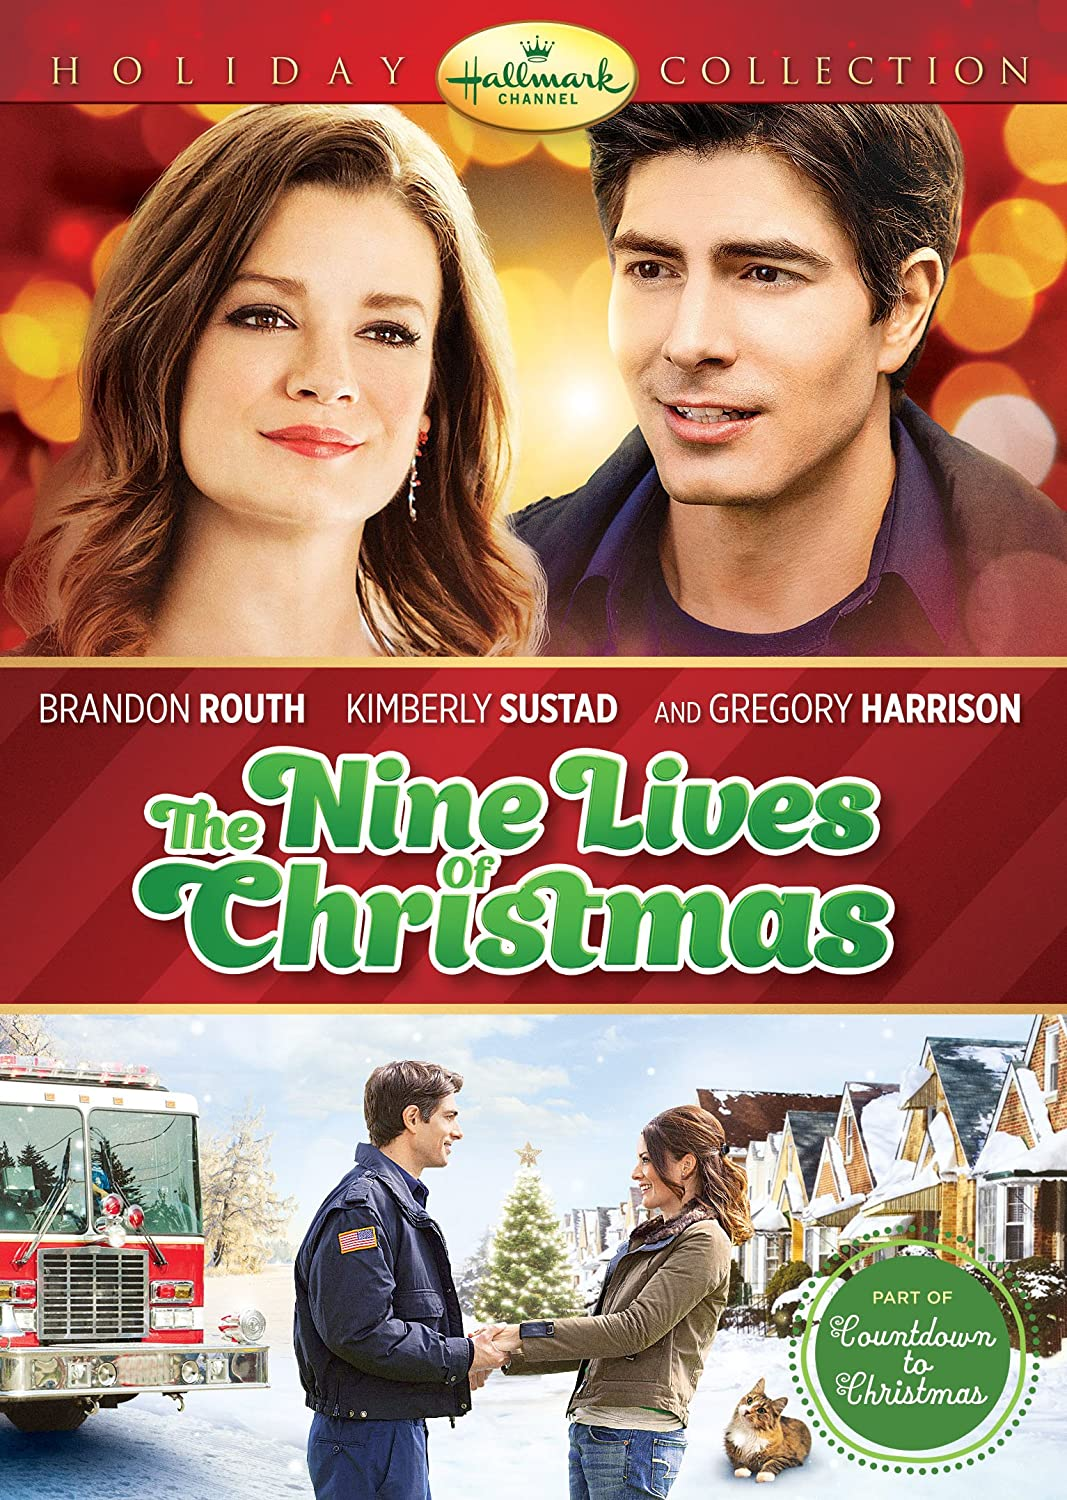 Nine Lives of Christmas - DVD Image